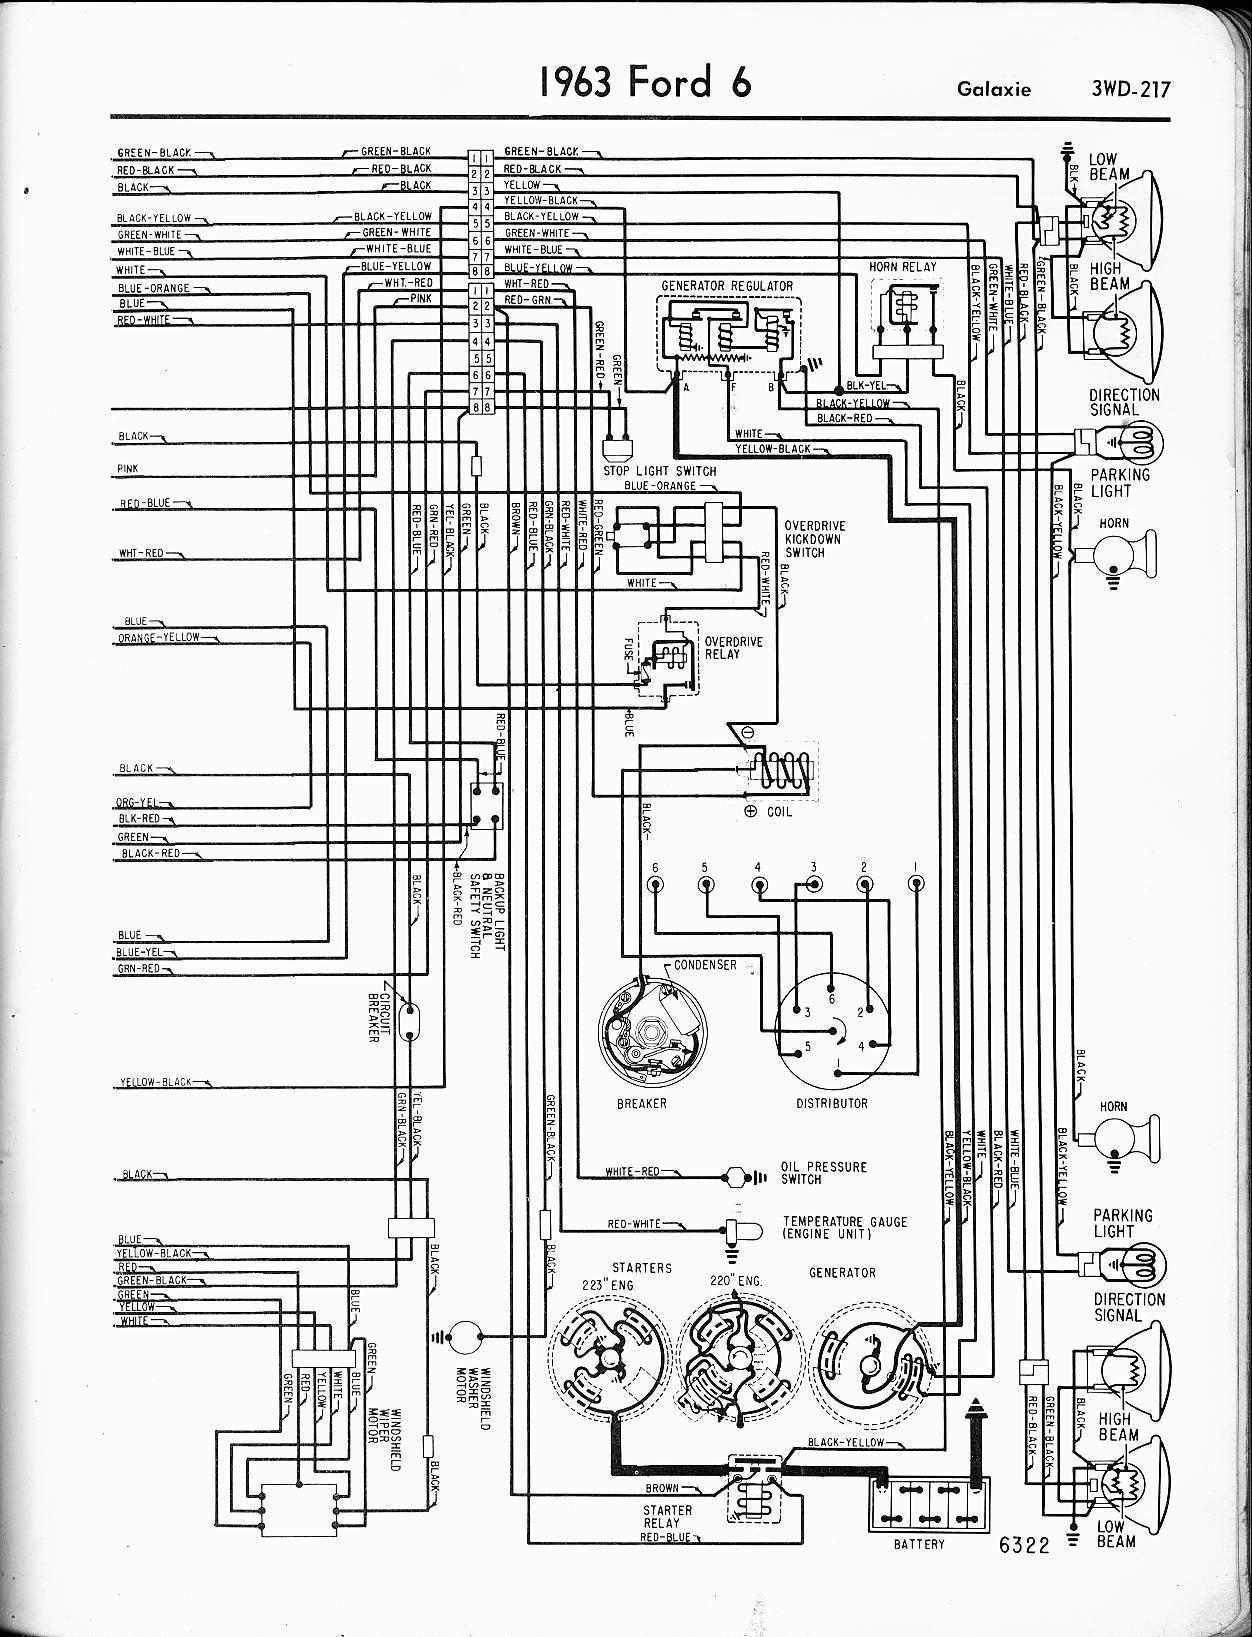 MWire5765 217 1964 f100 wiring diagram 1965 f100 wiring diagram \u2022 free wiring  at reclaimingppi.co